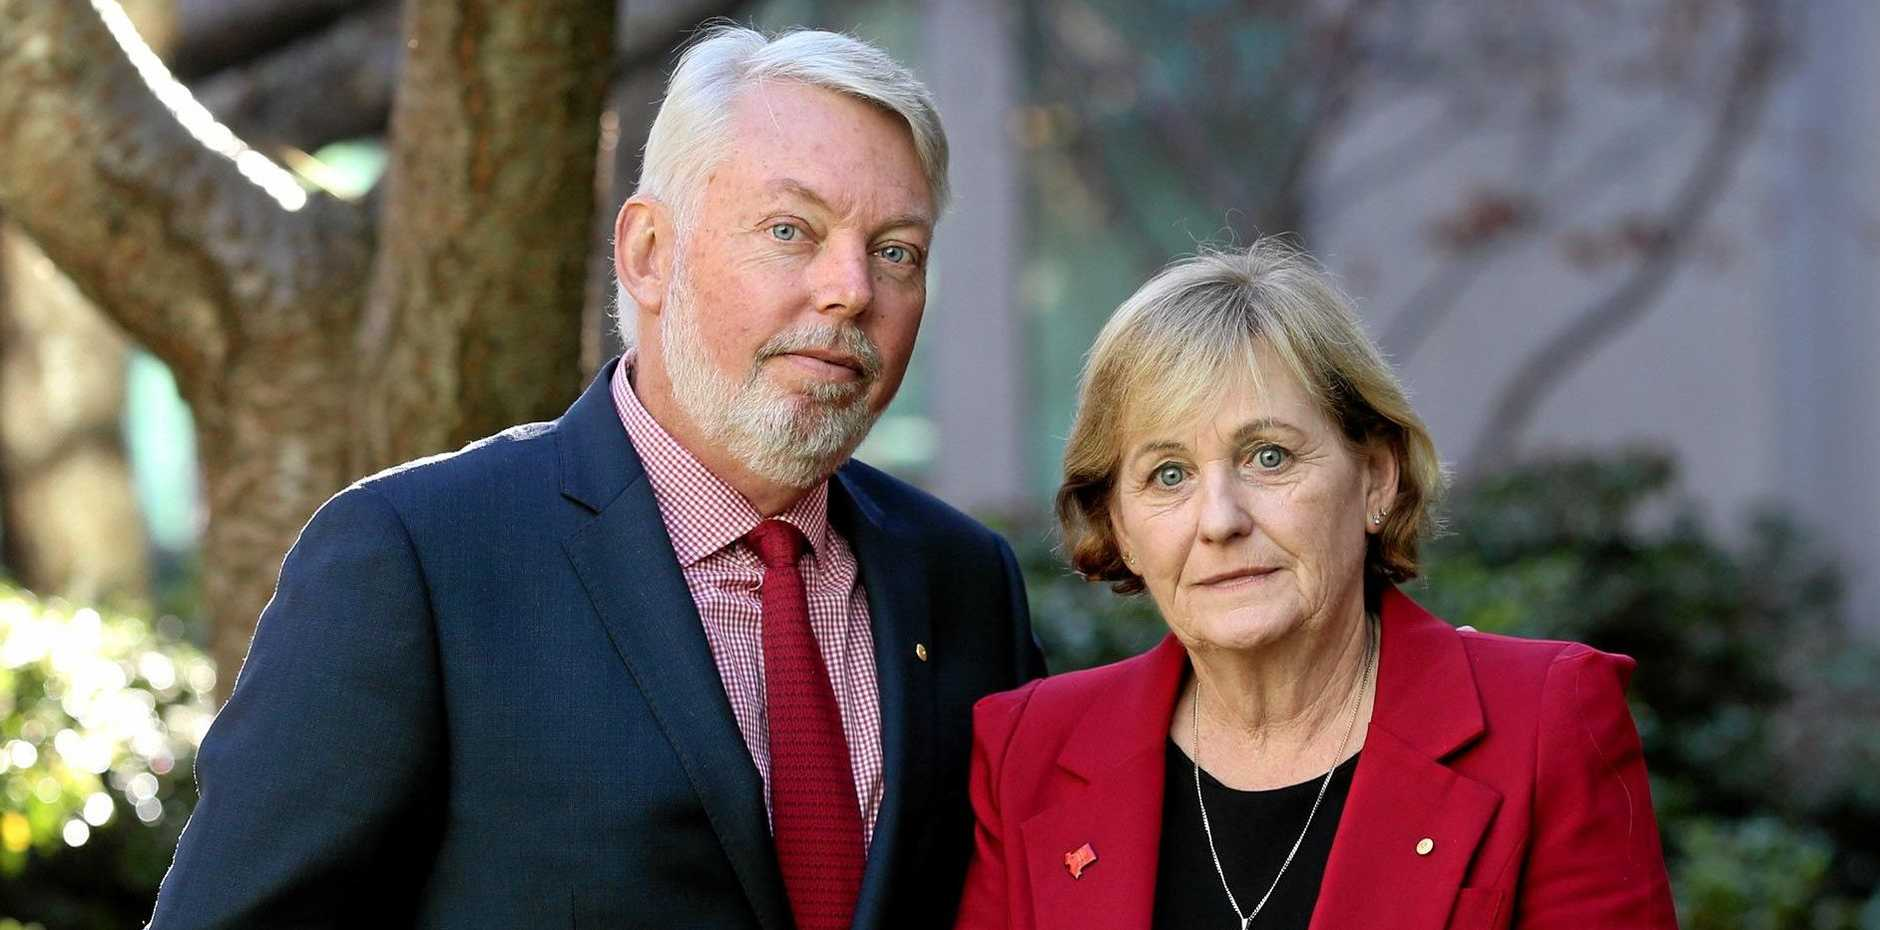 Justice campaigners Bruce and Denise Morcombe at Parliament House in Canberra.